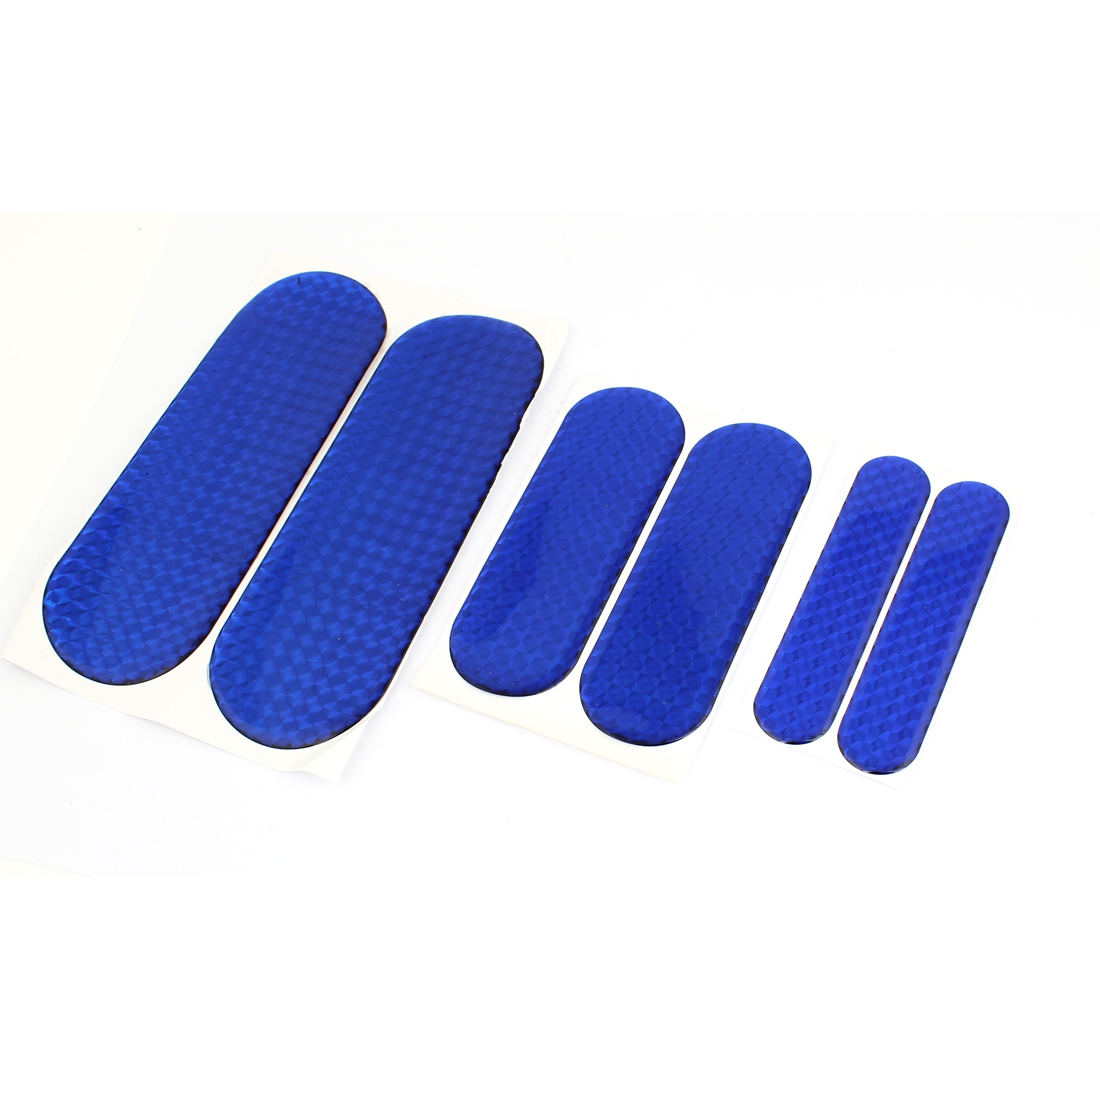 Vehicle Car Self Adhesive Back Plastic Blue Reflective Stickers Set 6 in 1